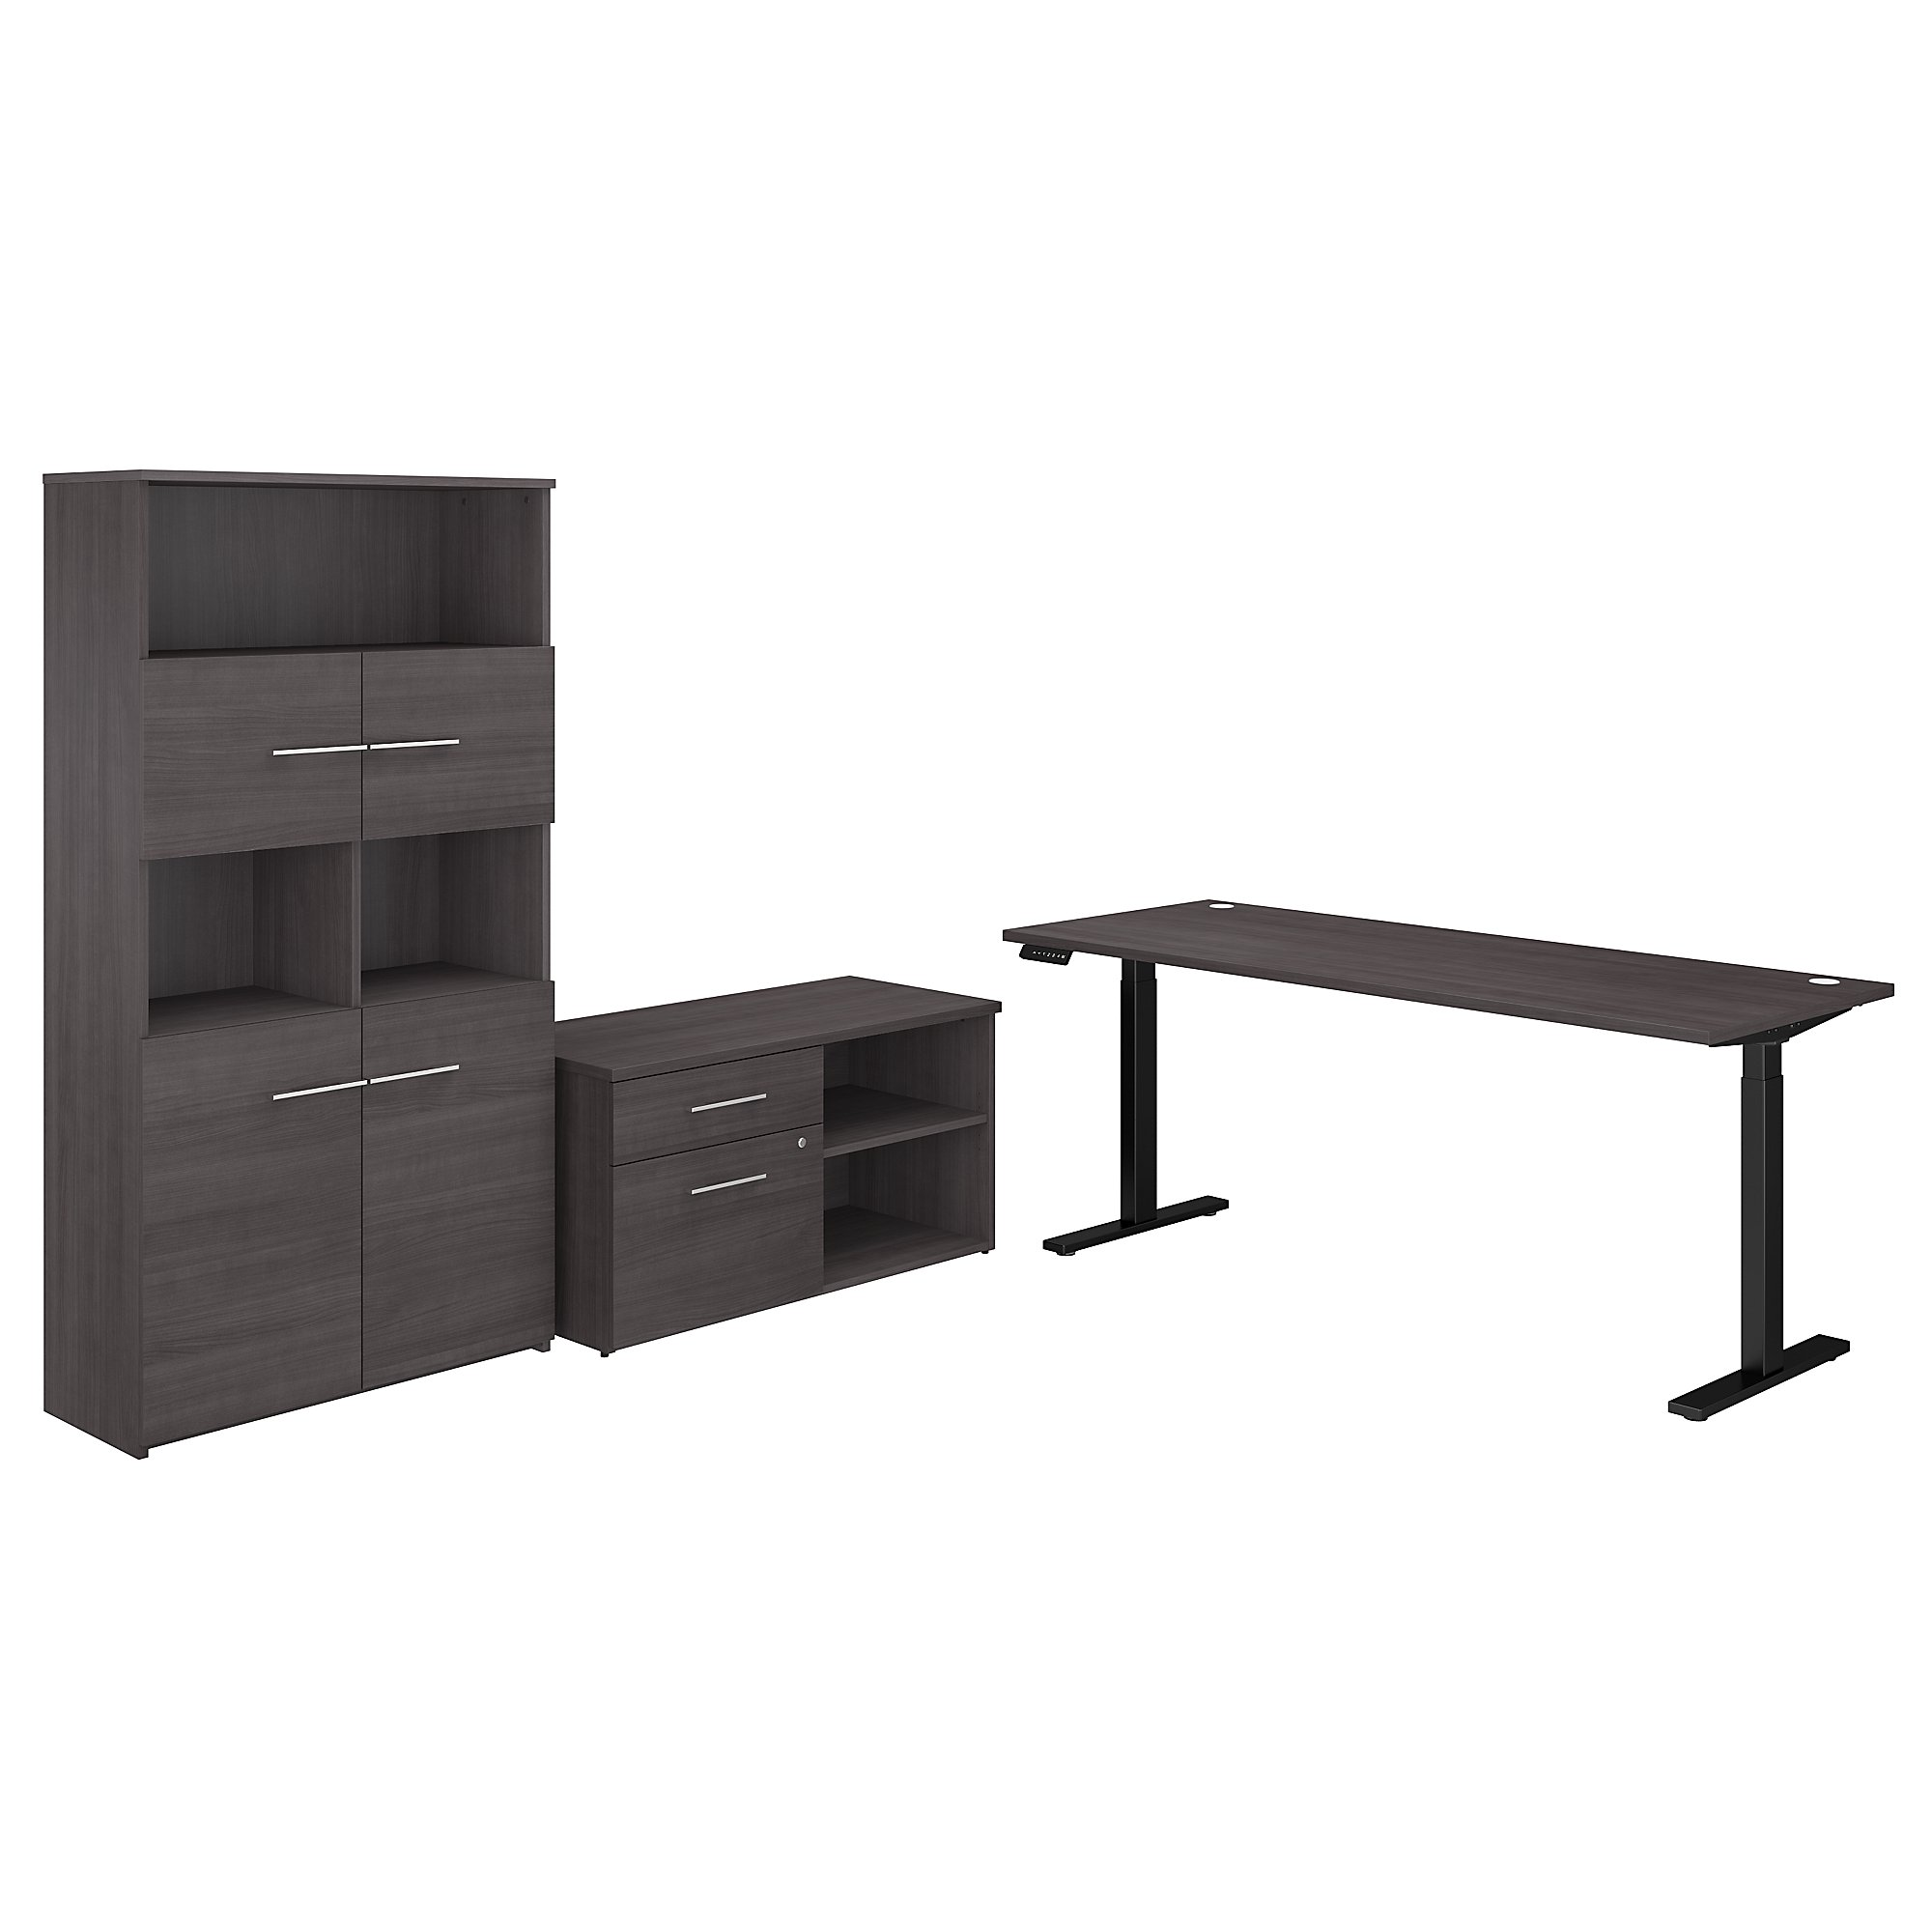 variable height office 500 desk with bookcase in storm gray